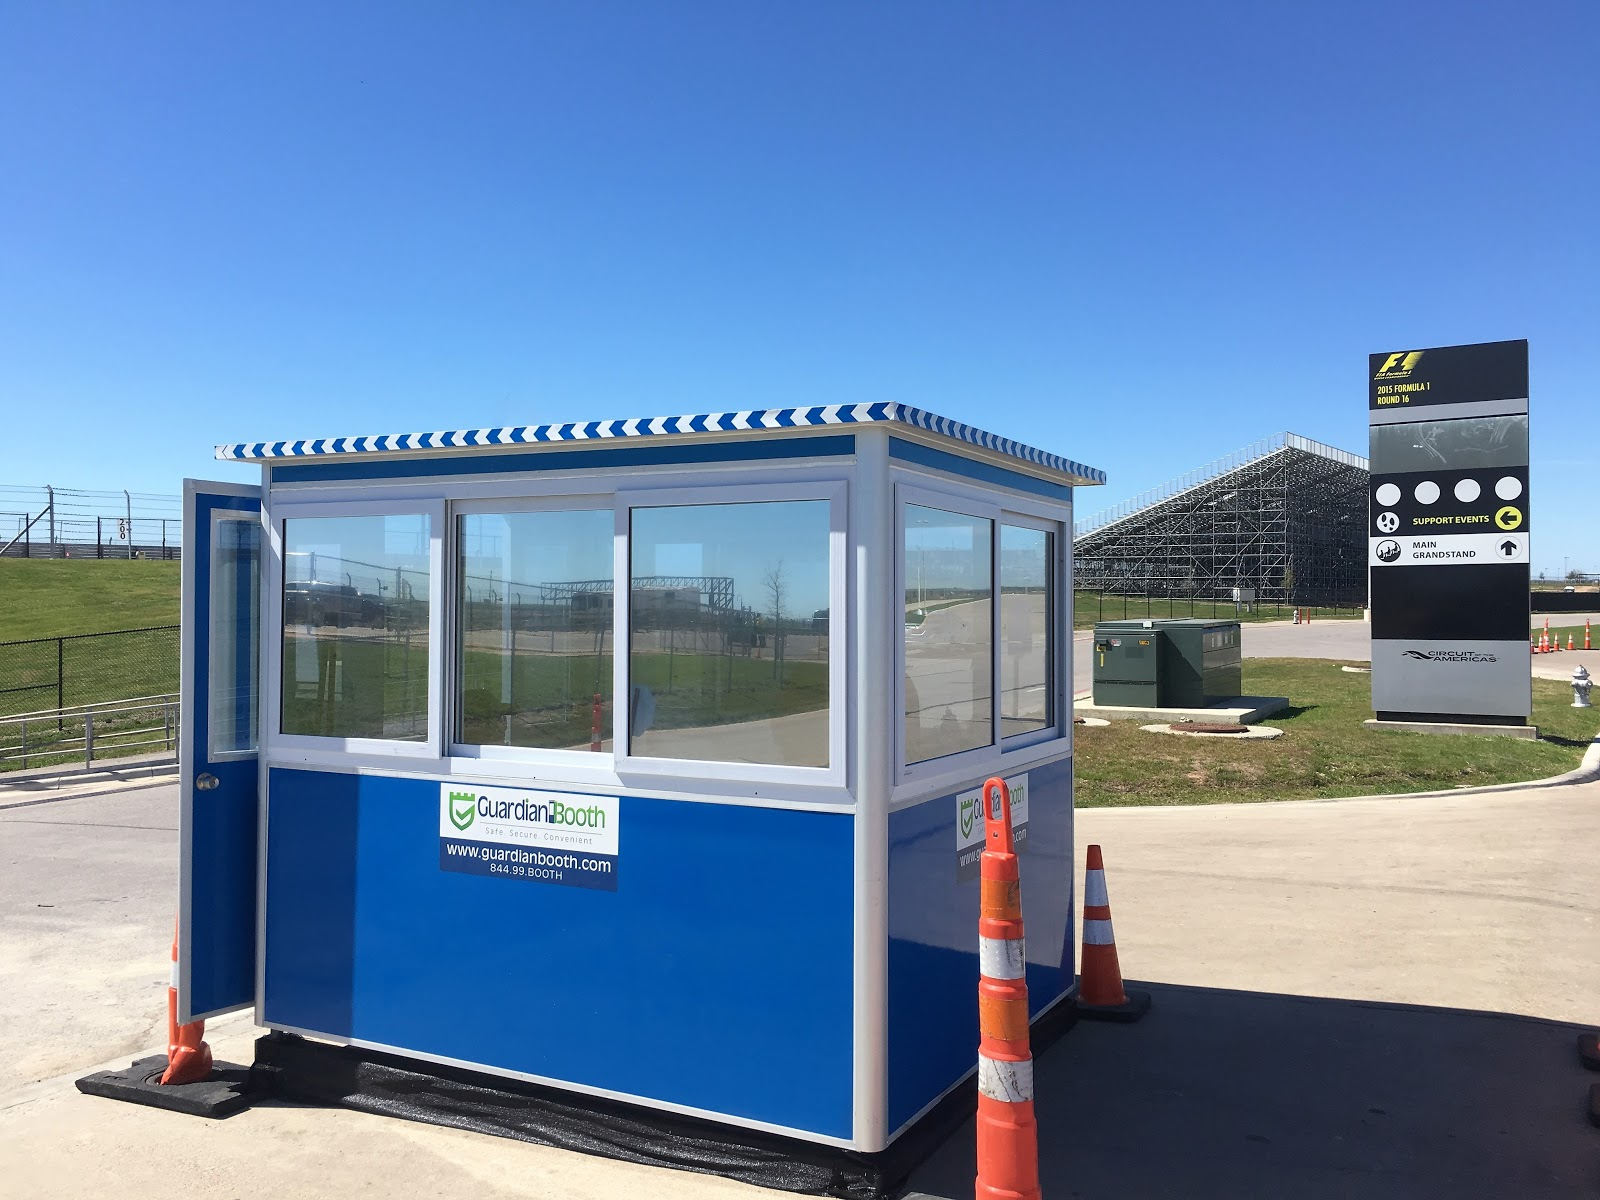 Pre manufactured guard booth from Guardian Booth in Spring Valley, NY, USA – Servicing the USA, Canada, and Mexico